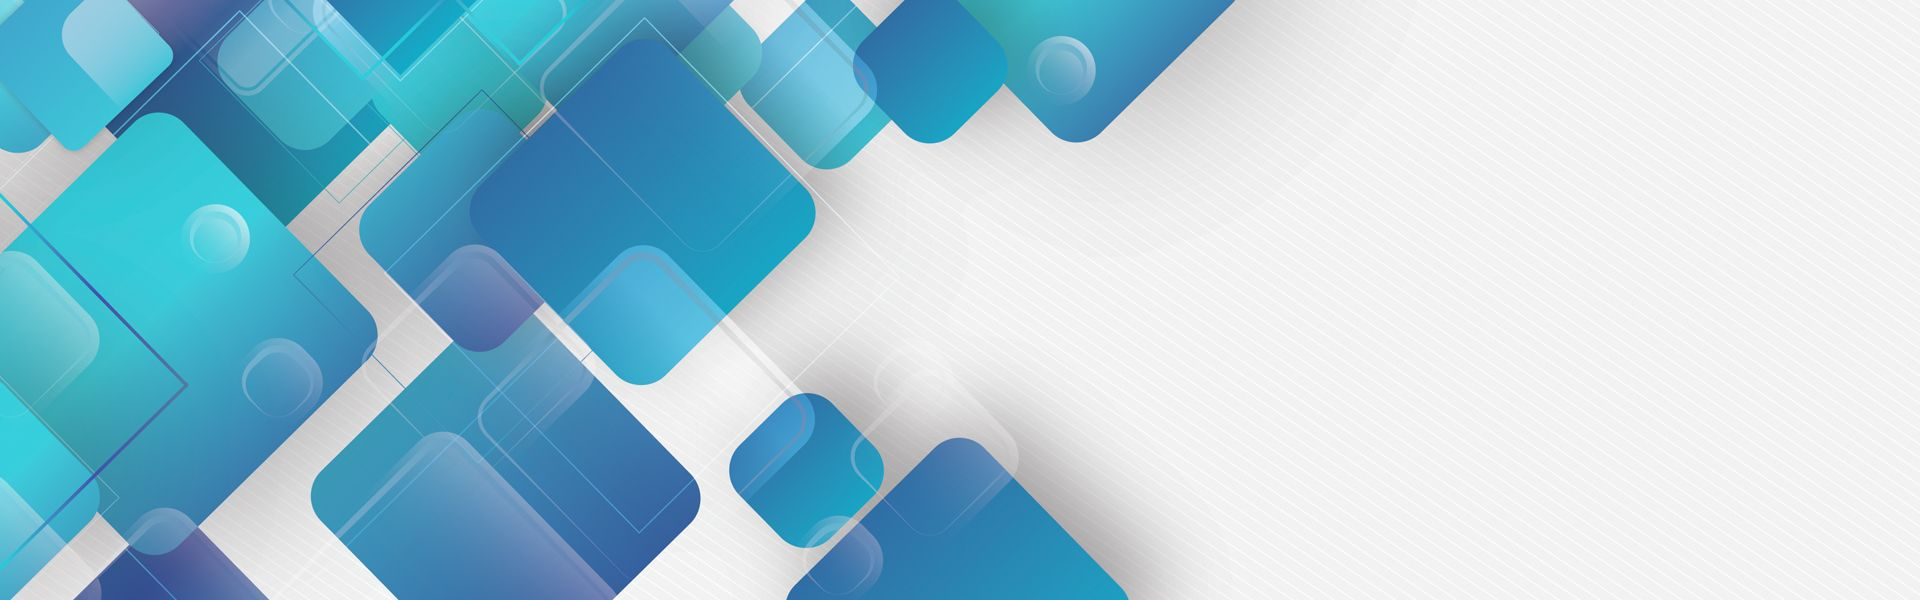 Business Technology Blue Banner Abstract Geometric Background In